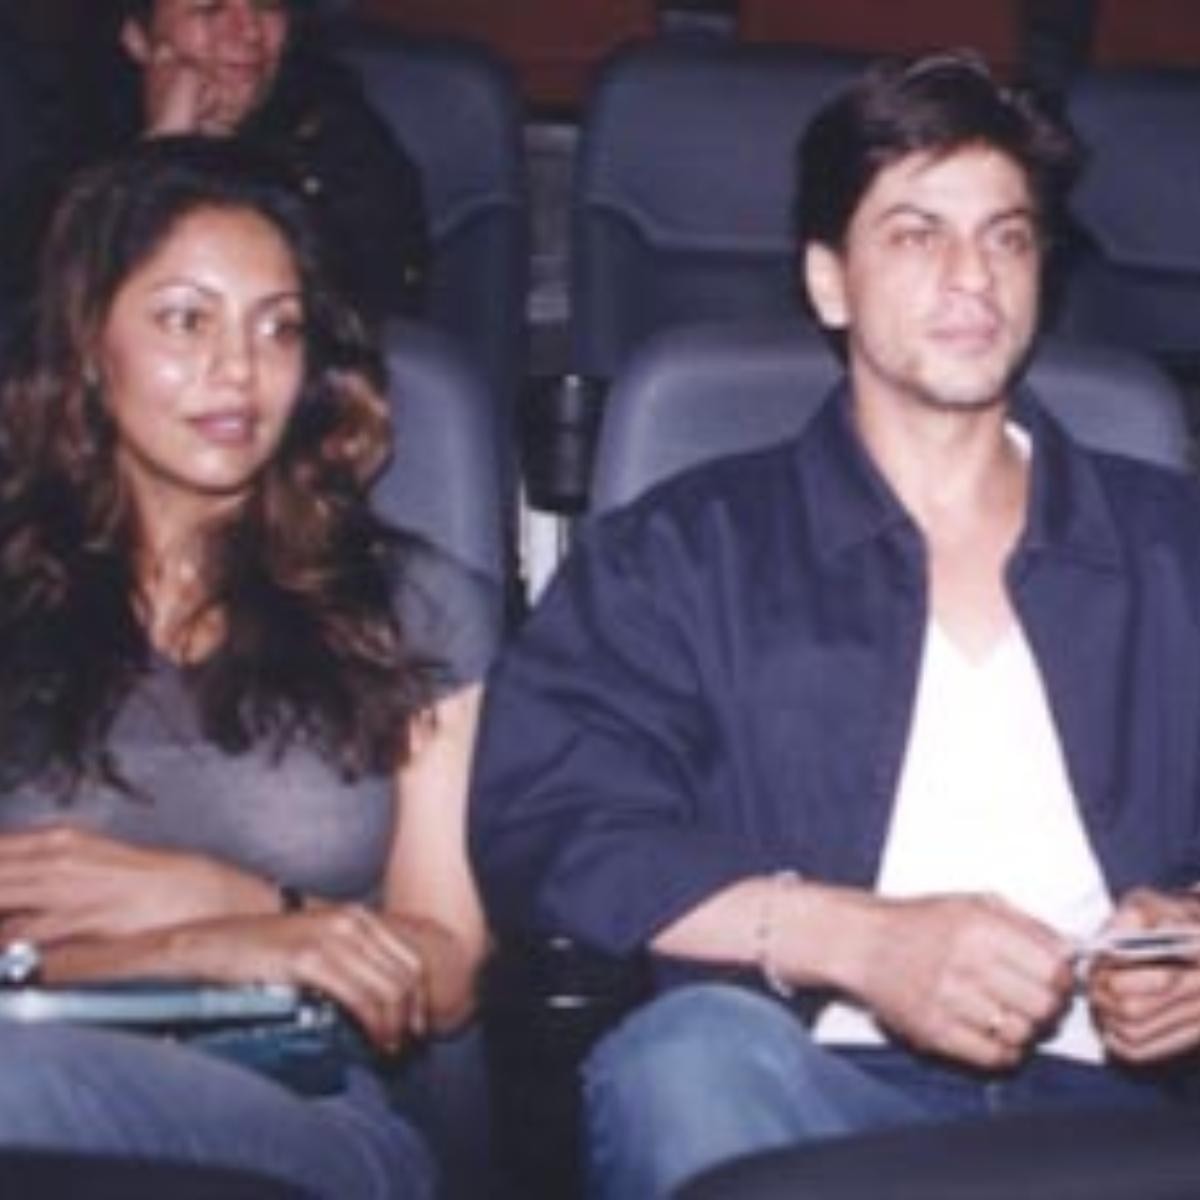 She is the co-founder of Red Chillies entertainment